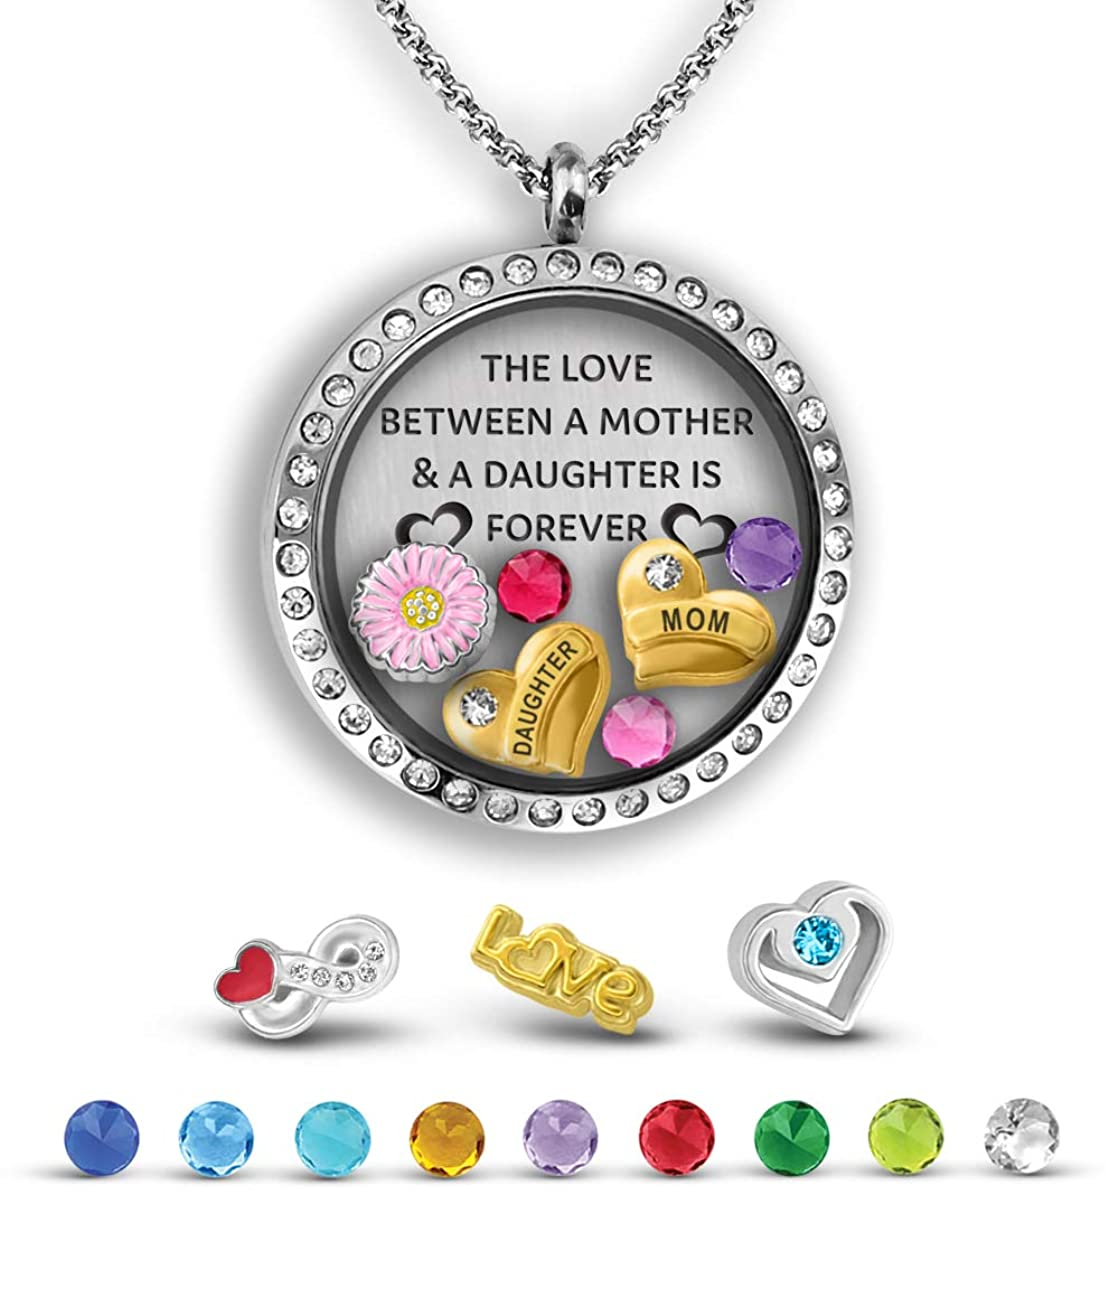 A Touch of Dazzle Mother Daughter Necklace for Mom from Daughter The Love Between a Mother and Daughter is Forever Necklaces for Women Locket Necklace for Women Mom Gifts Ideas Mom Jewelry for Women